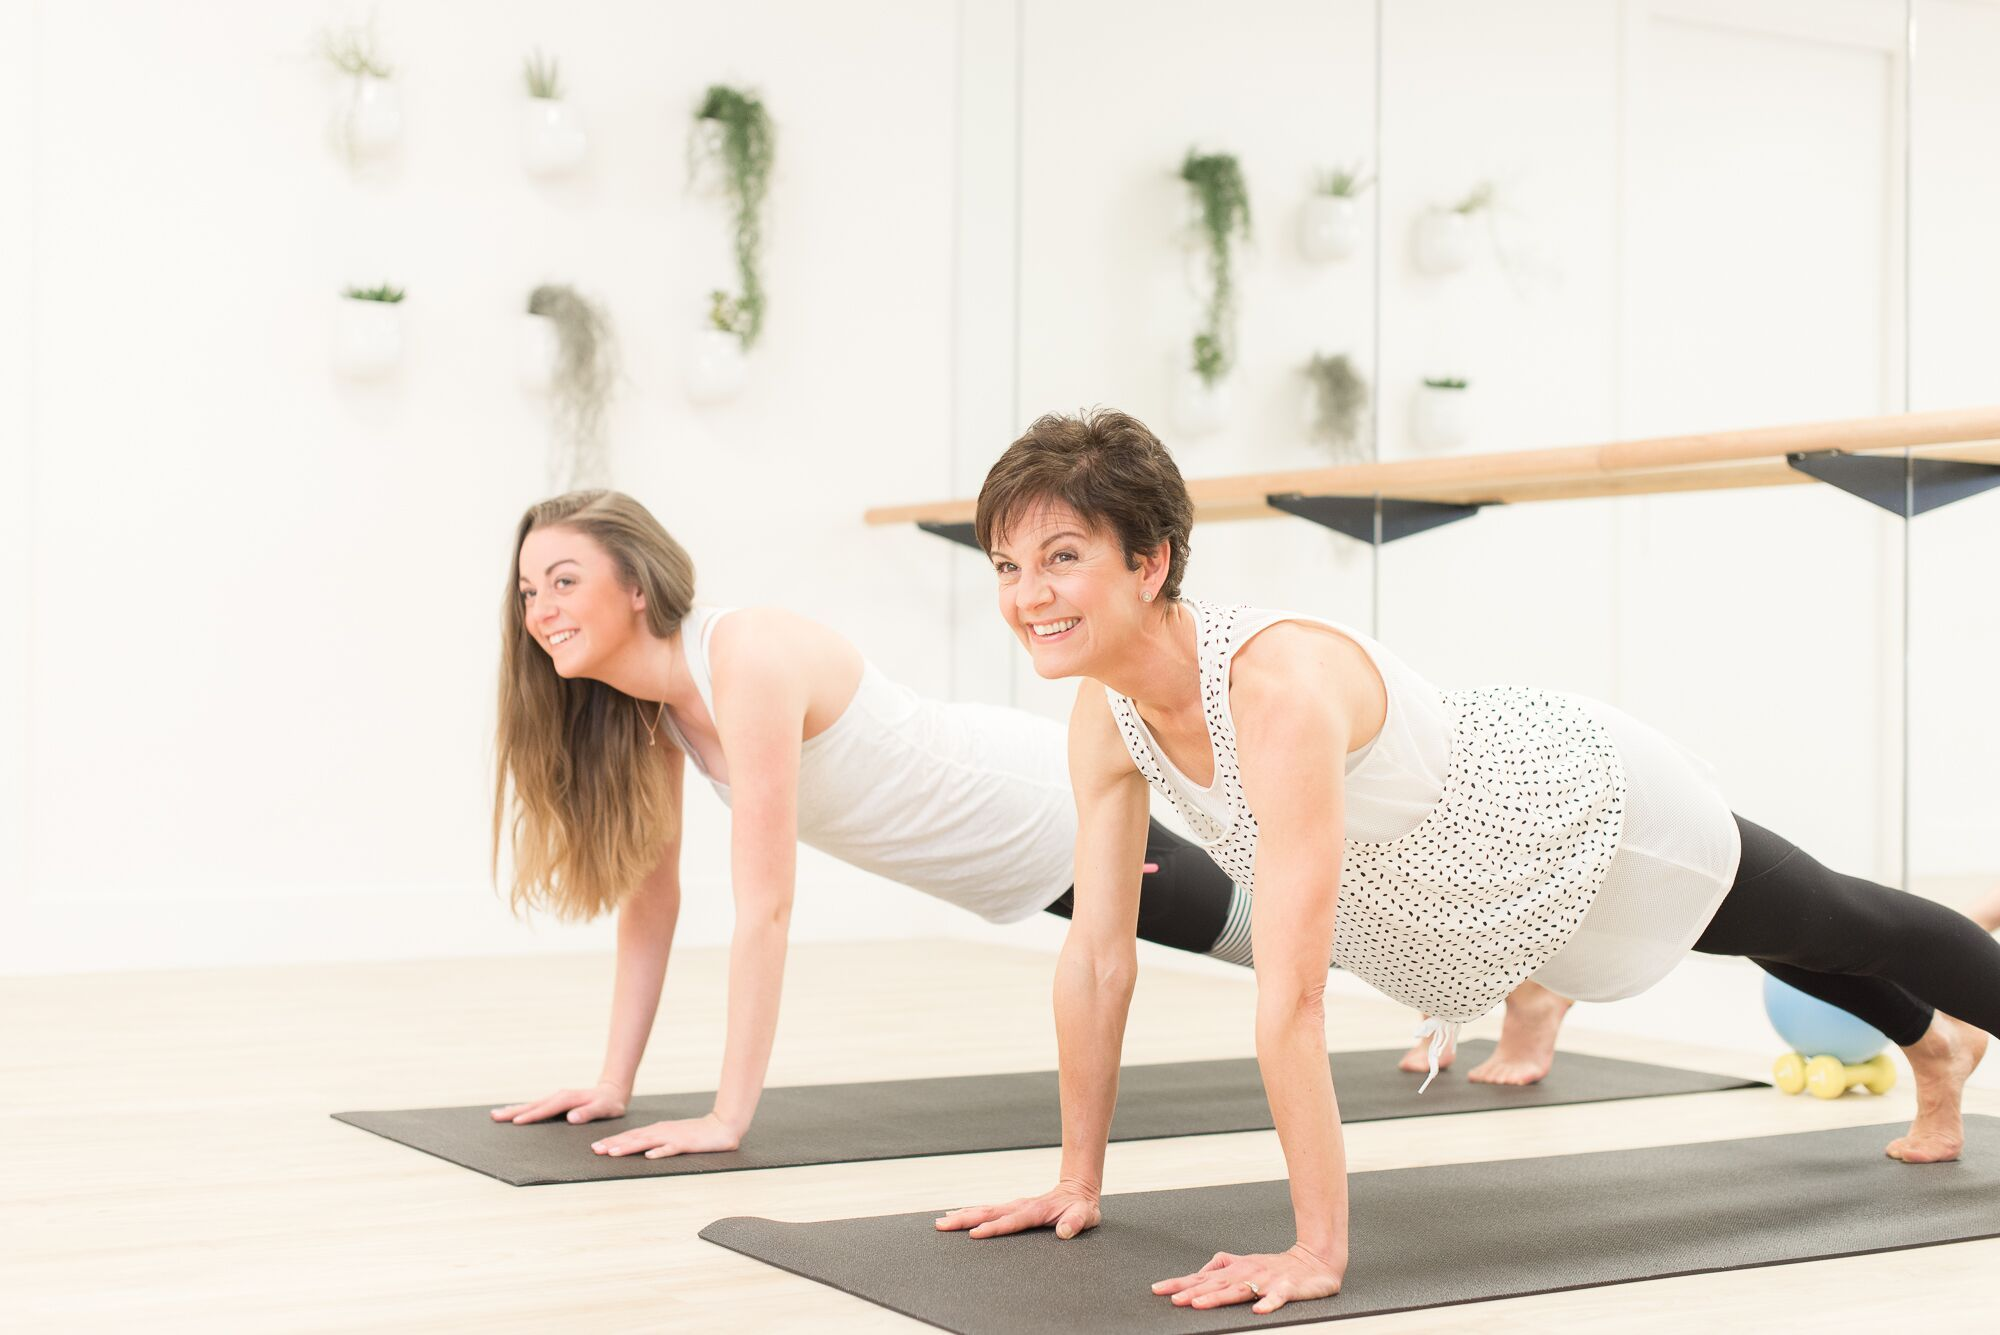 Anyone can do barre. You can be new to yoga, Pilates